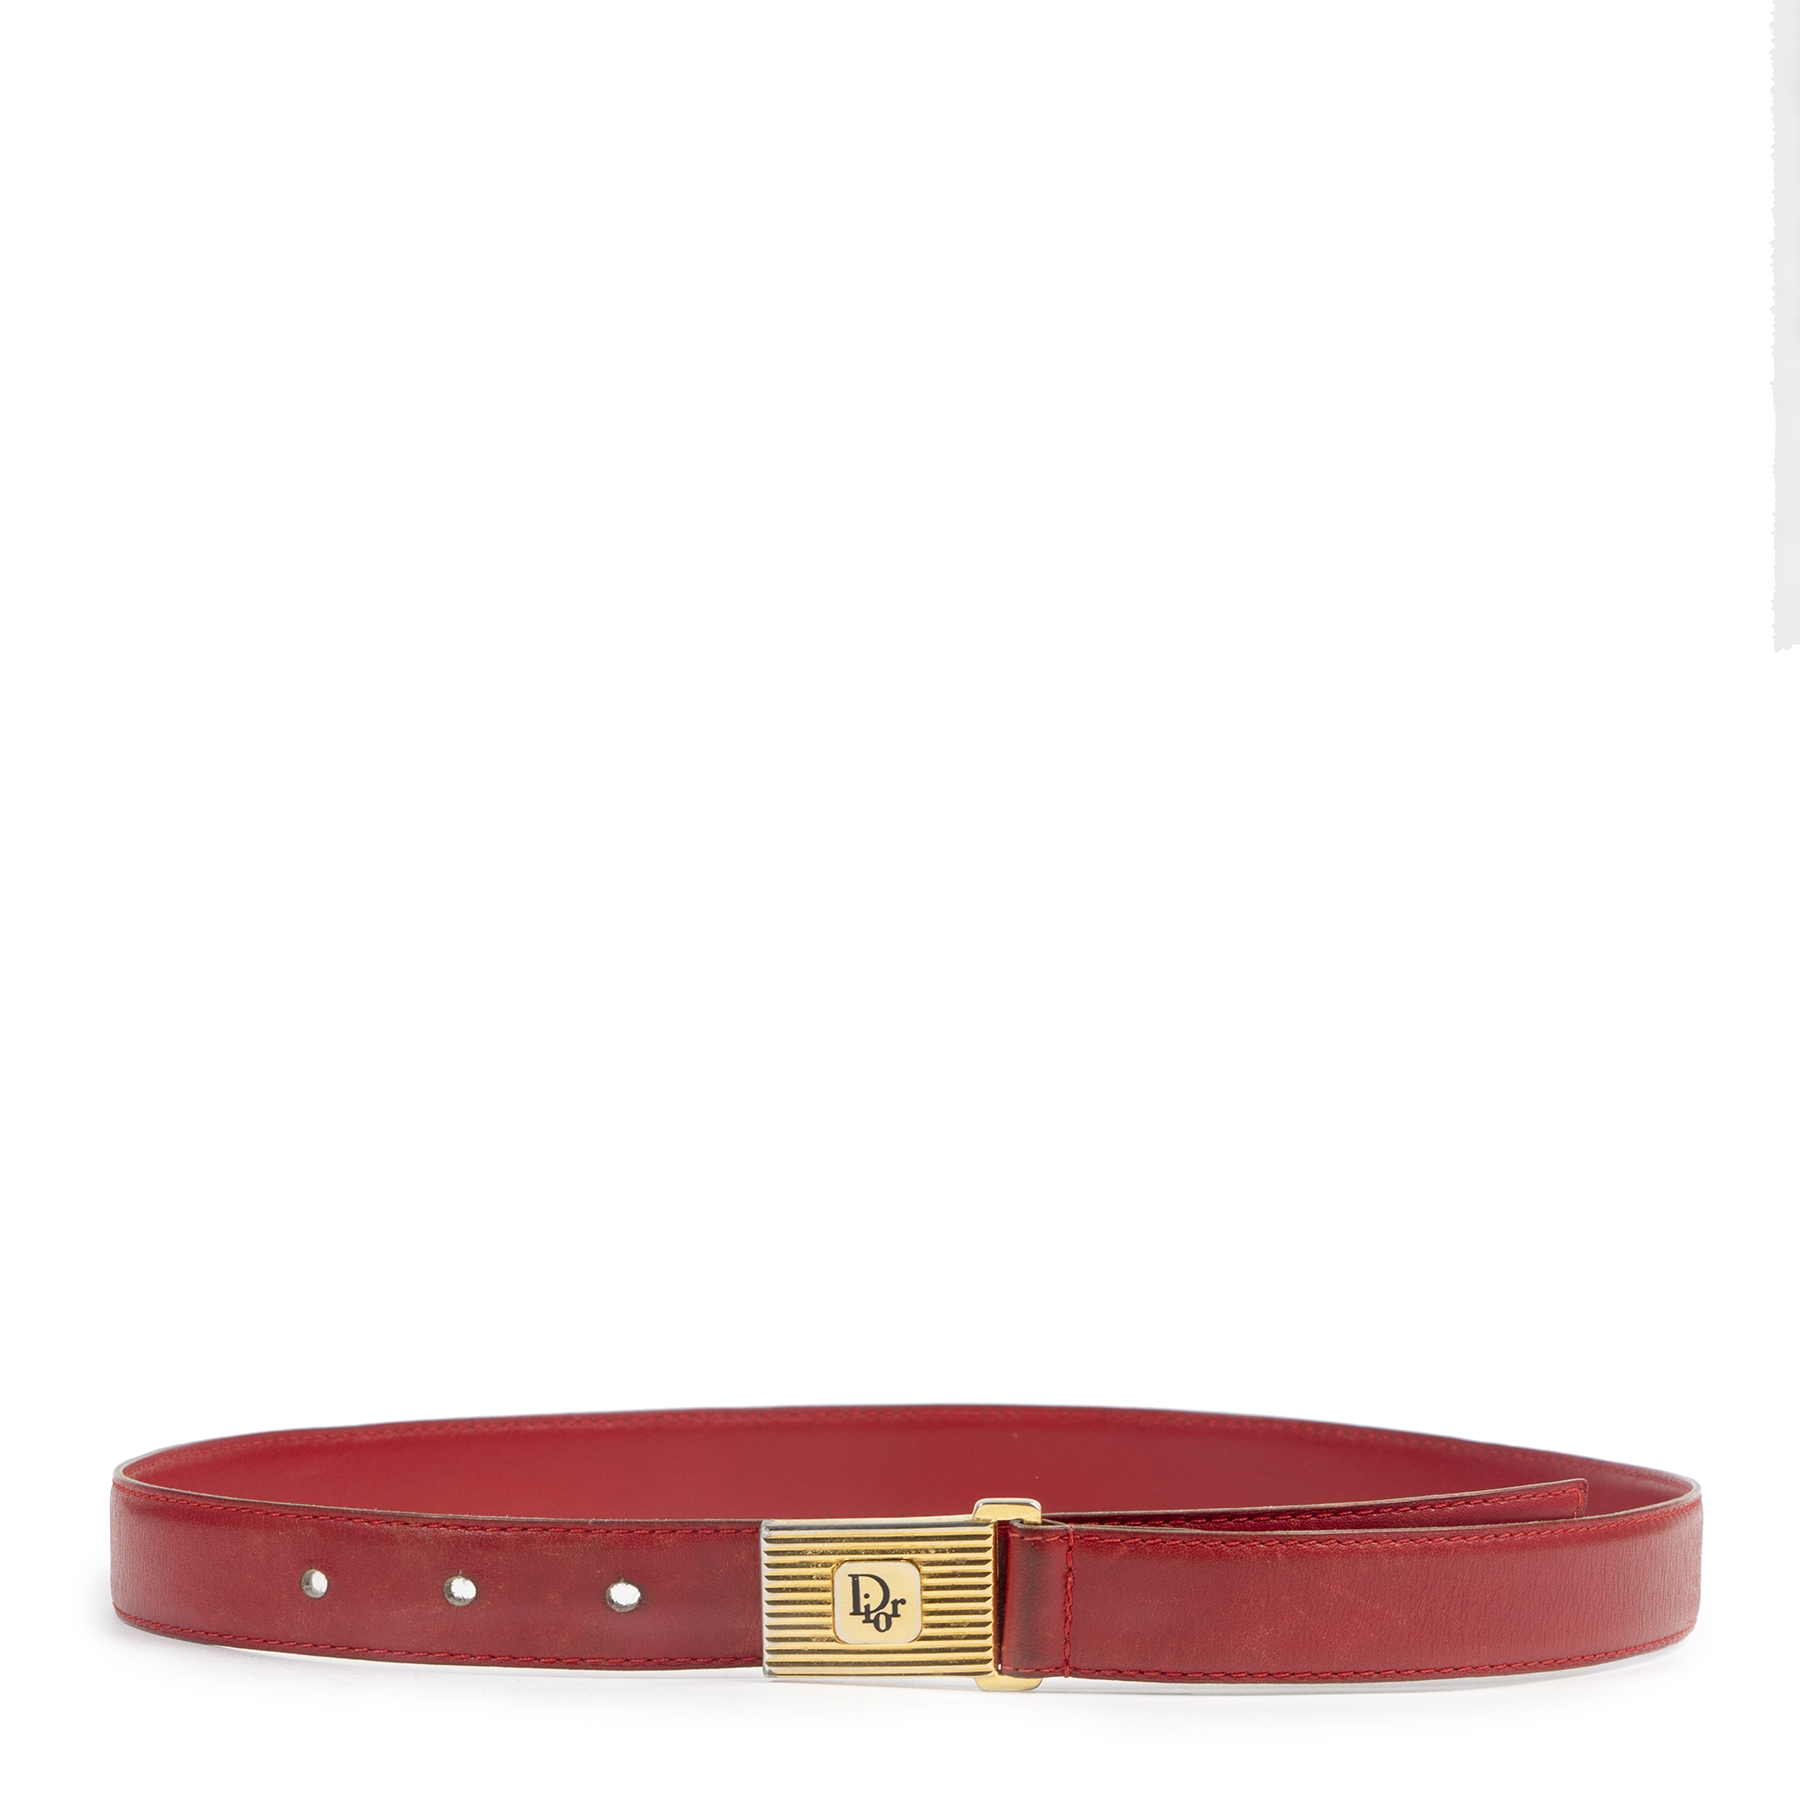 acheter en ligne seconde main Dior Red Belt - Size 75.